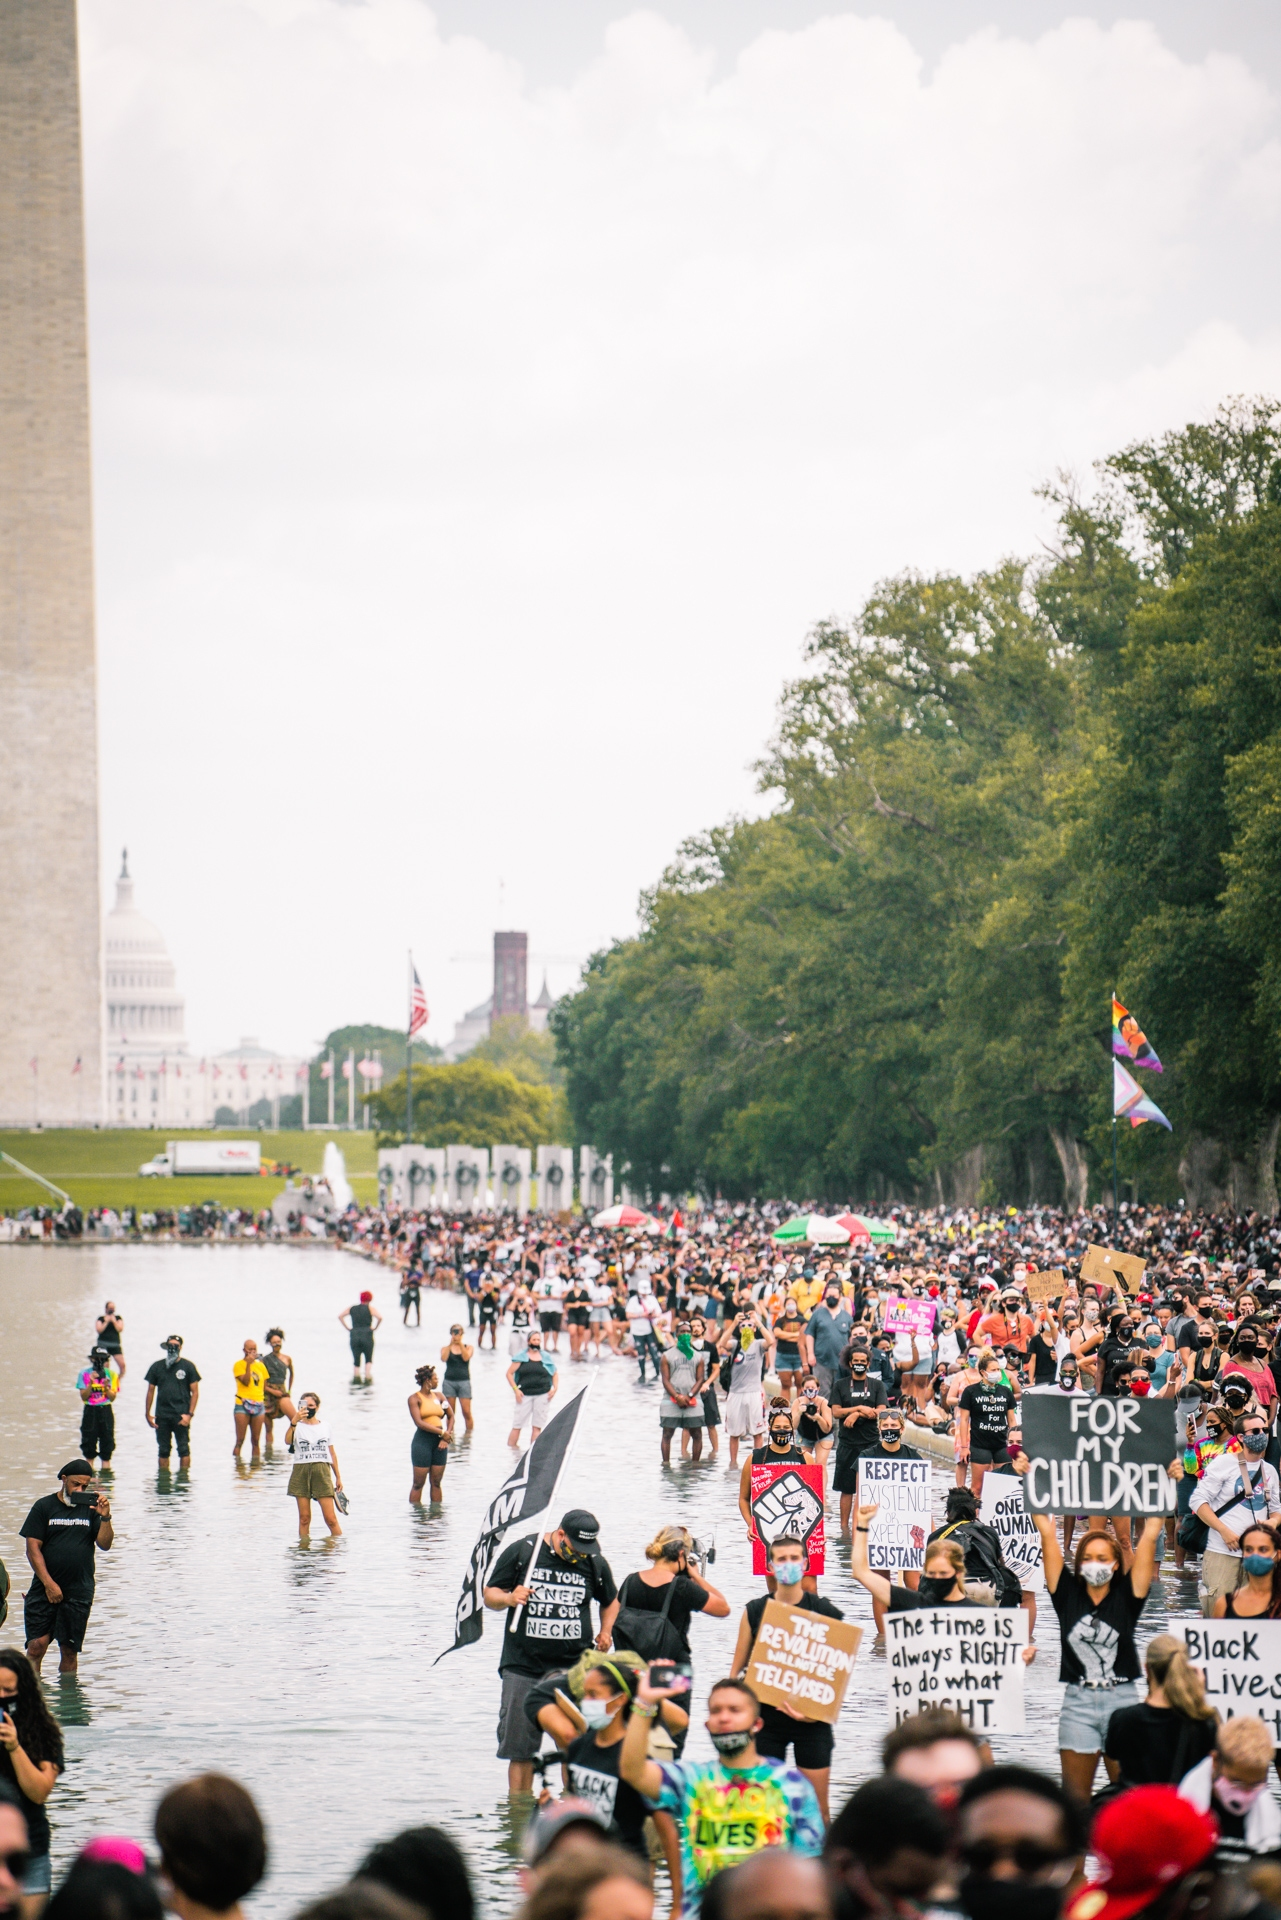 ommitment march on washington, al sharpton walk, national action network, march, social justice, al sharpton,national mall,march, protest, rally, black lives matter, blm, reflecting pool, national mall, marchers, protest,